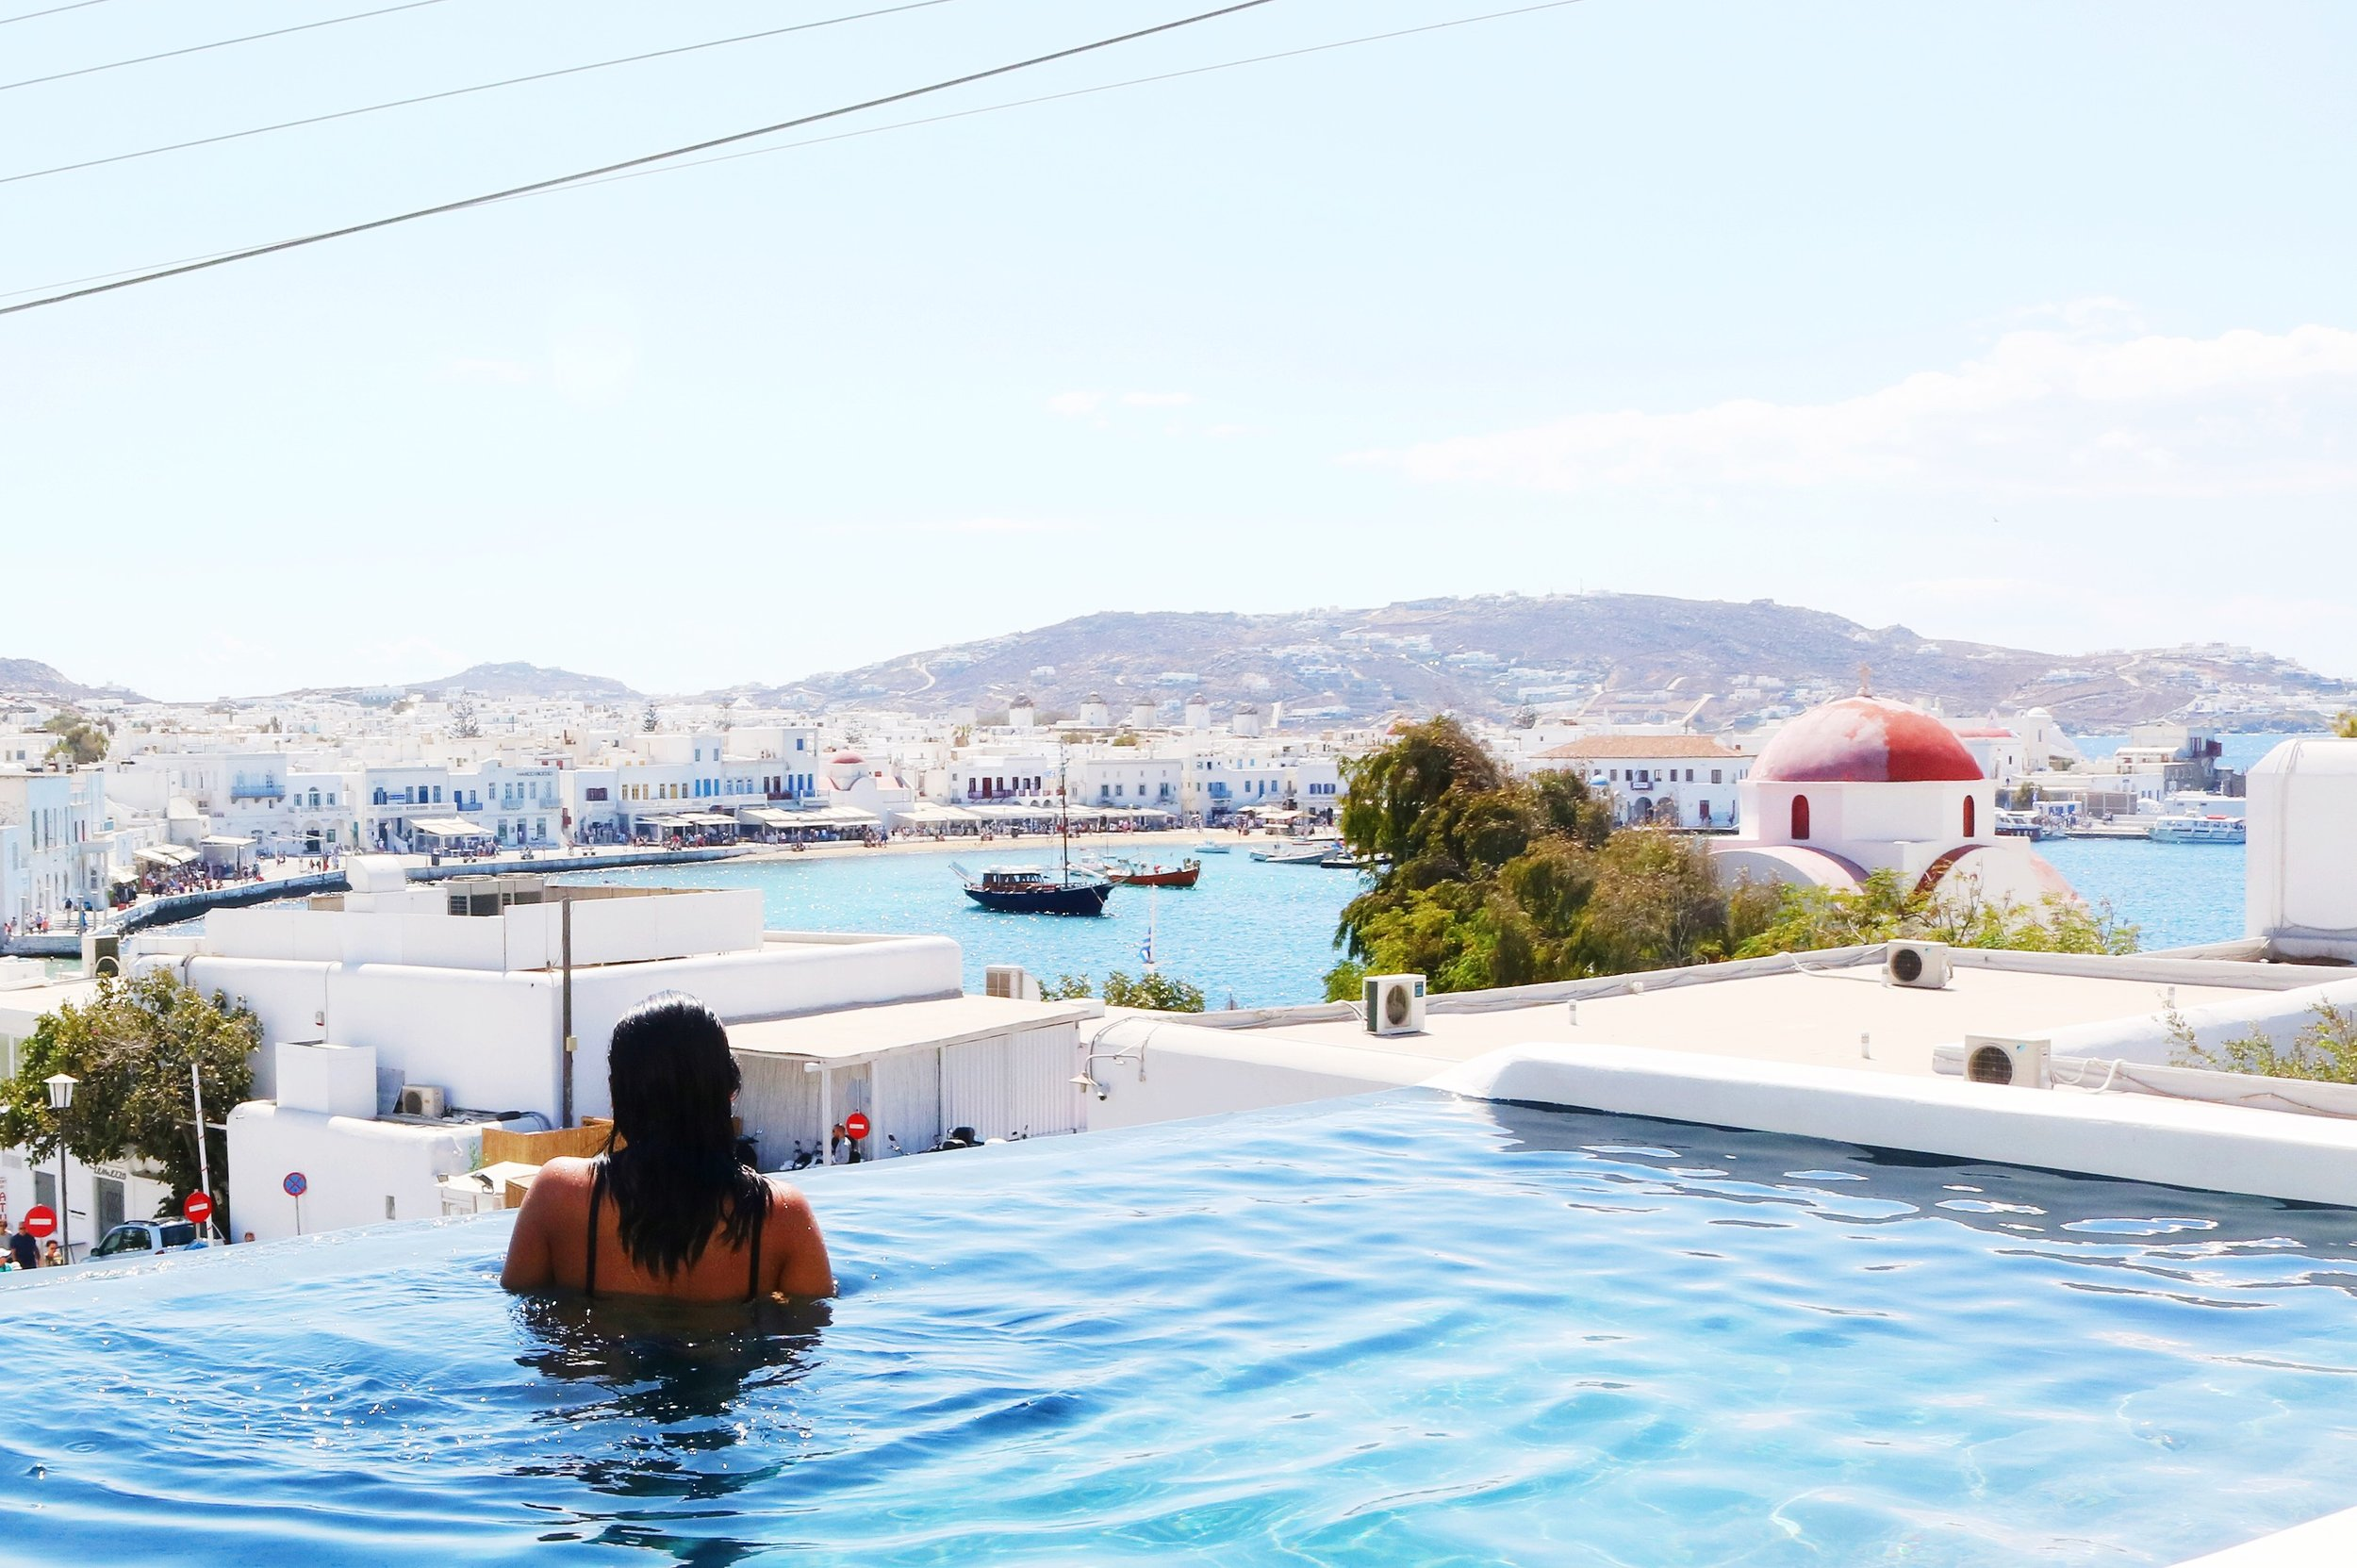 The poolside view at MyCocoon Hostel Mykonos